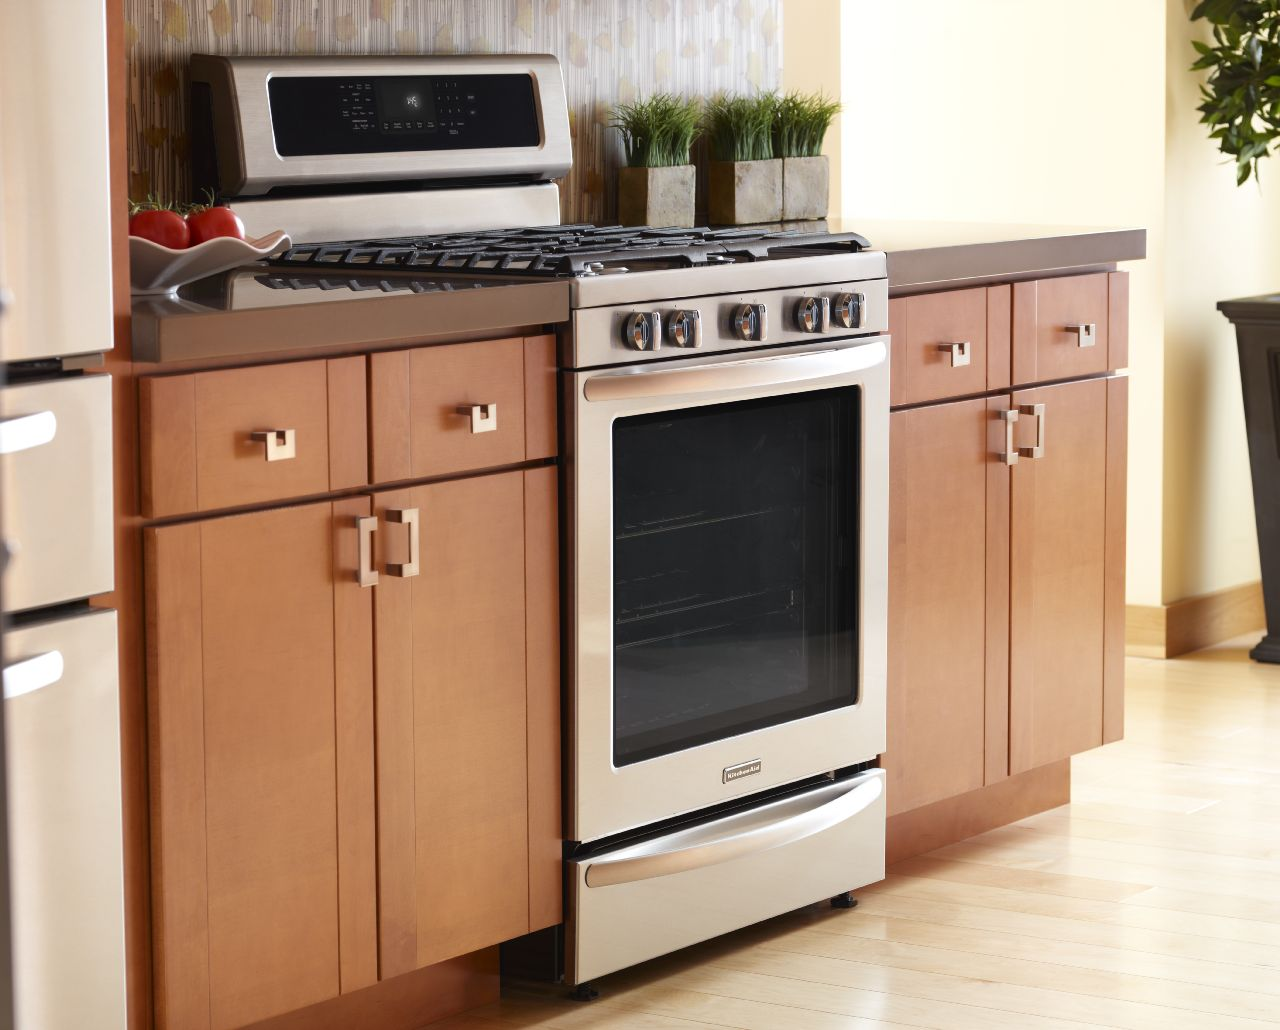 The Difference Between Kitchenaid Slide In And Freestanding Ranges